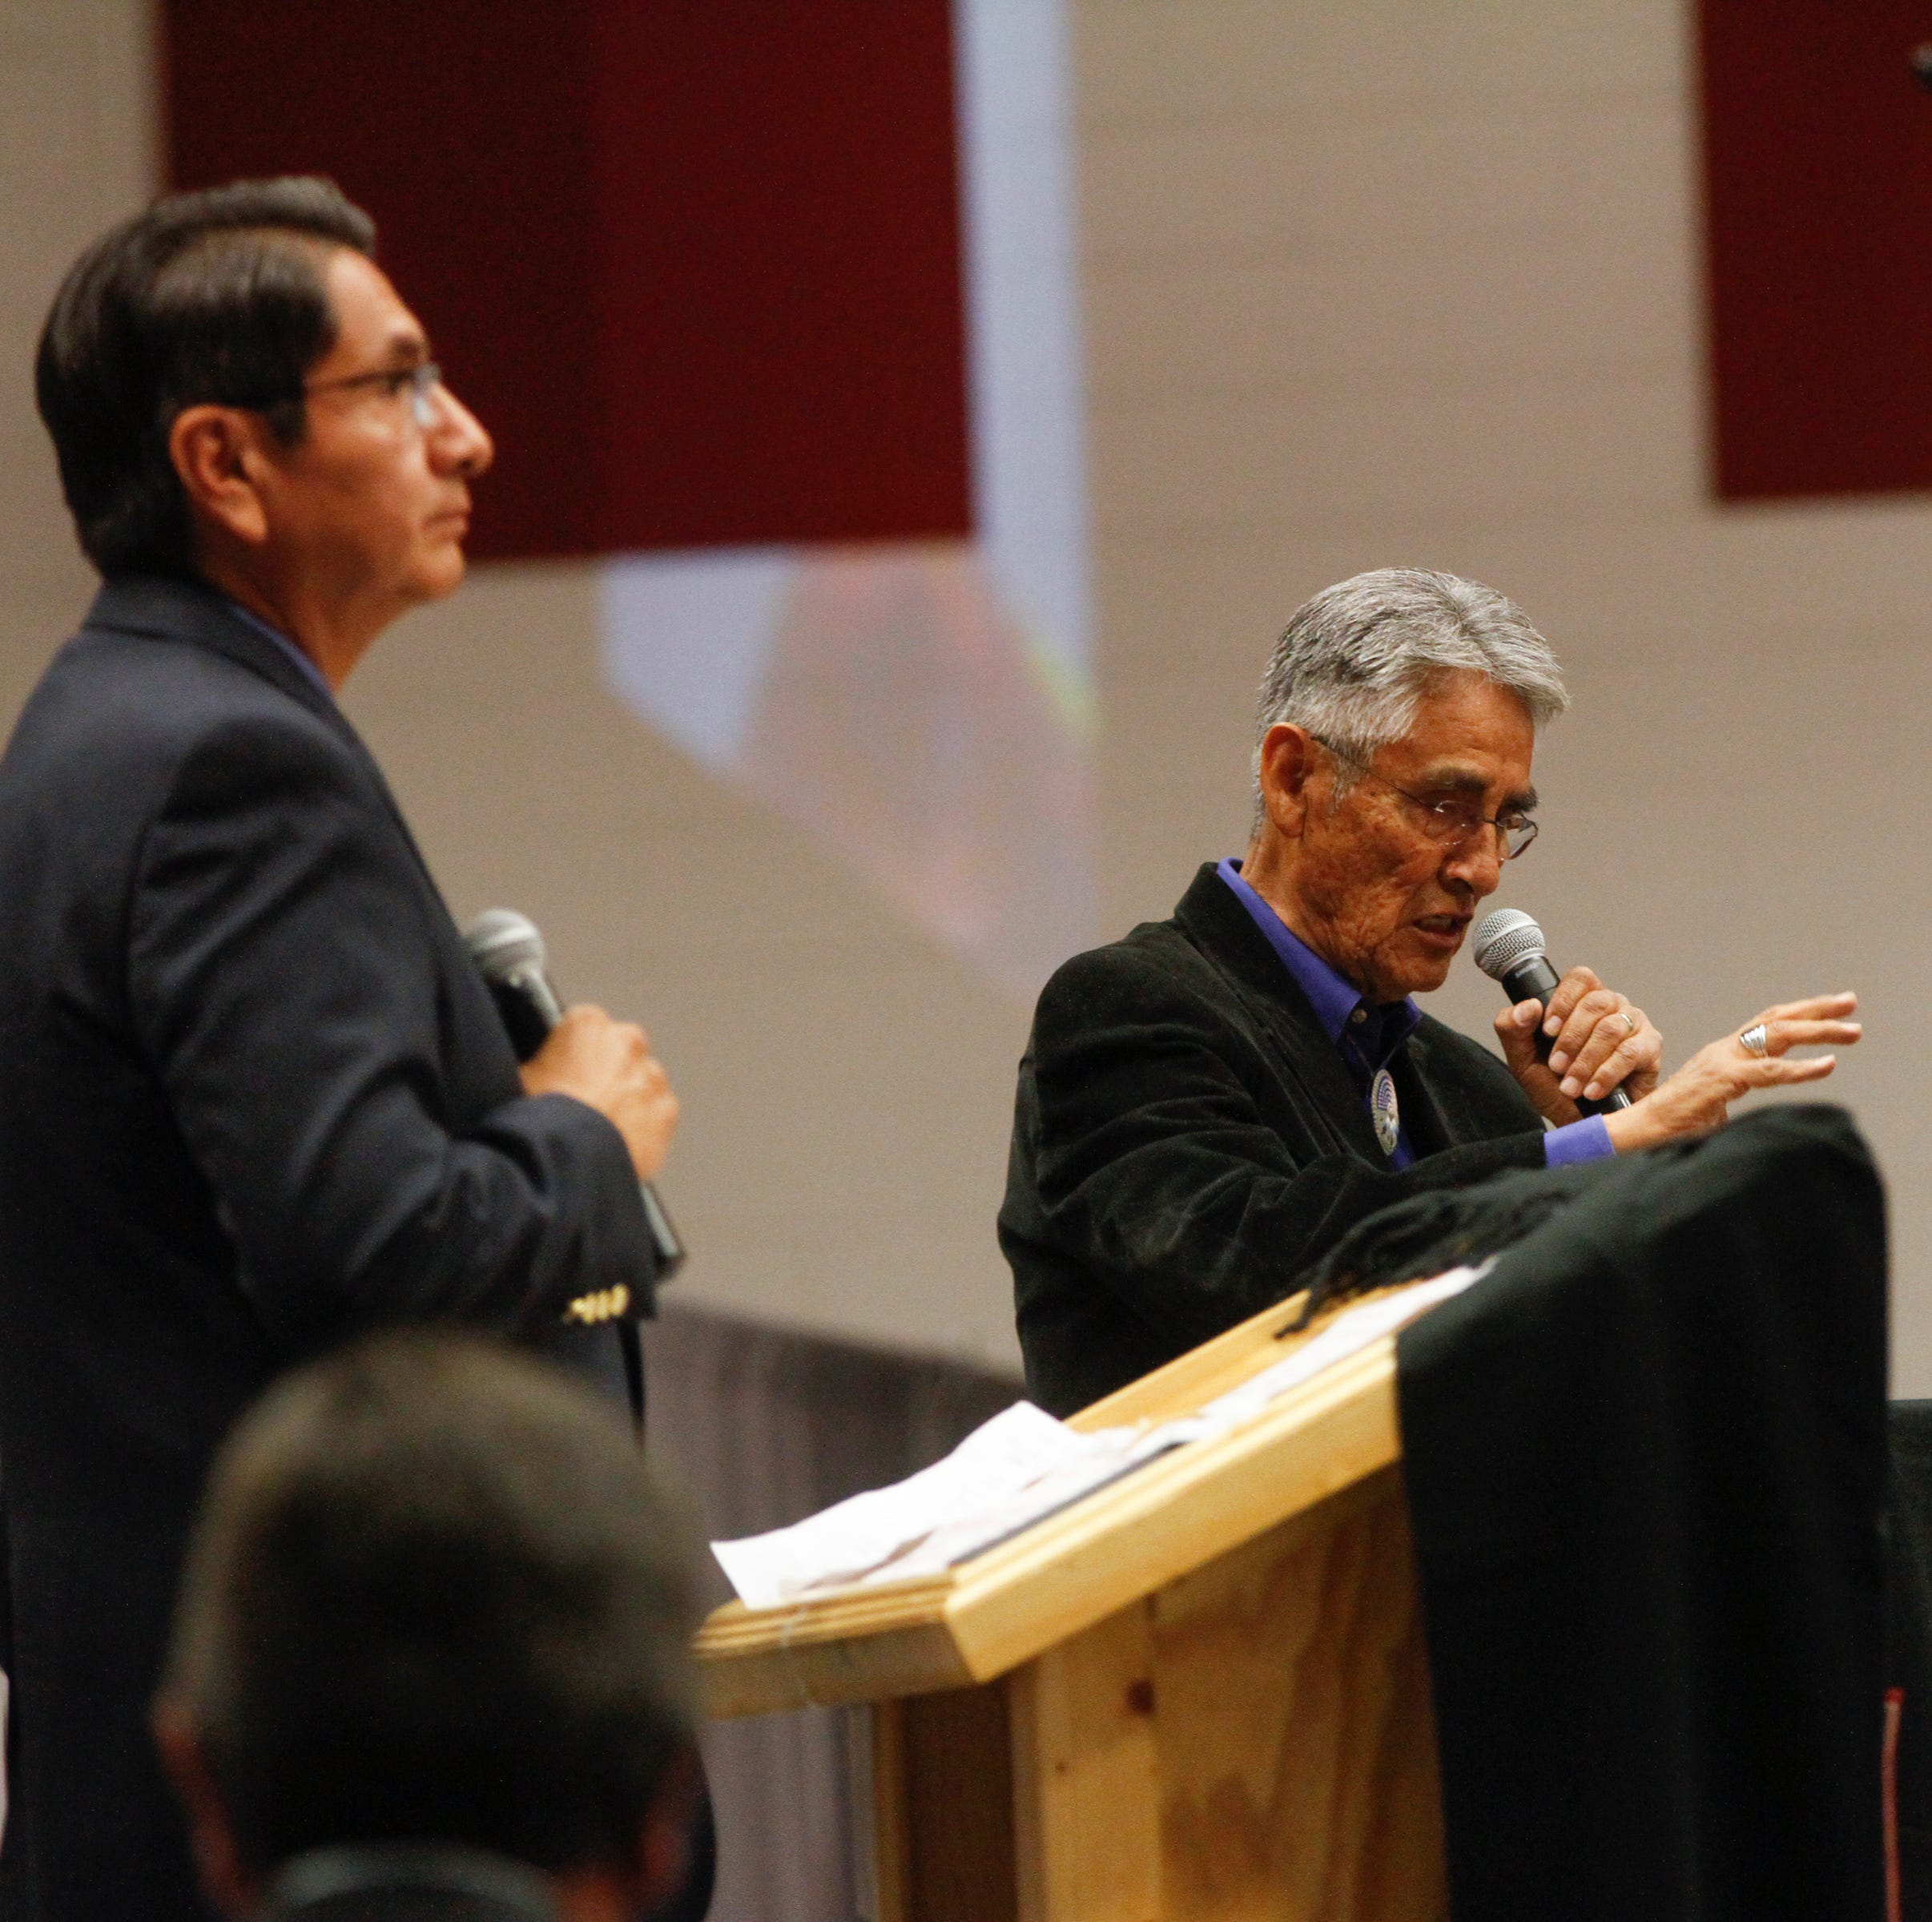 Navajo Nation Presidential candidates, Jonathan Nez, left, and Joe Shirley Jr. answer questions during a debate, Tuesday, Oct. 16, 2018 at Navajo Technical University's Wellness Center in Crownpoint.